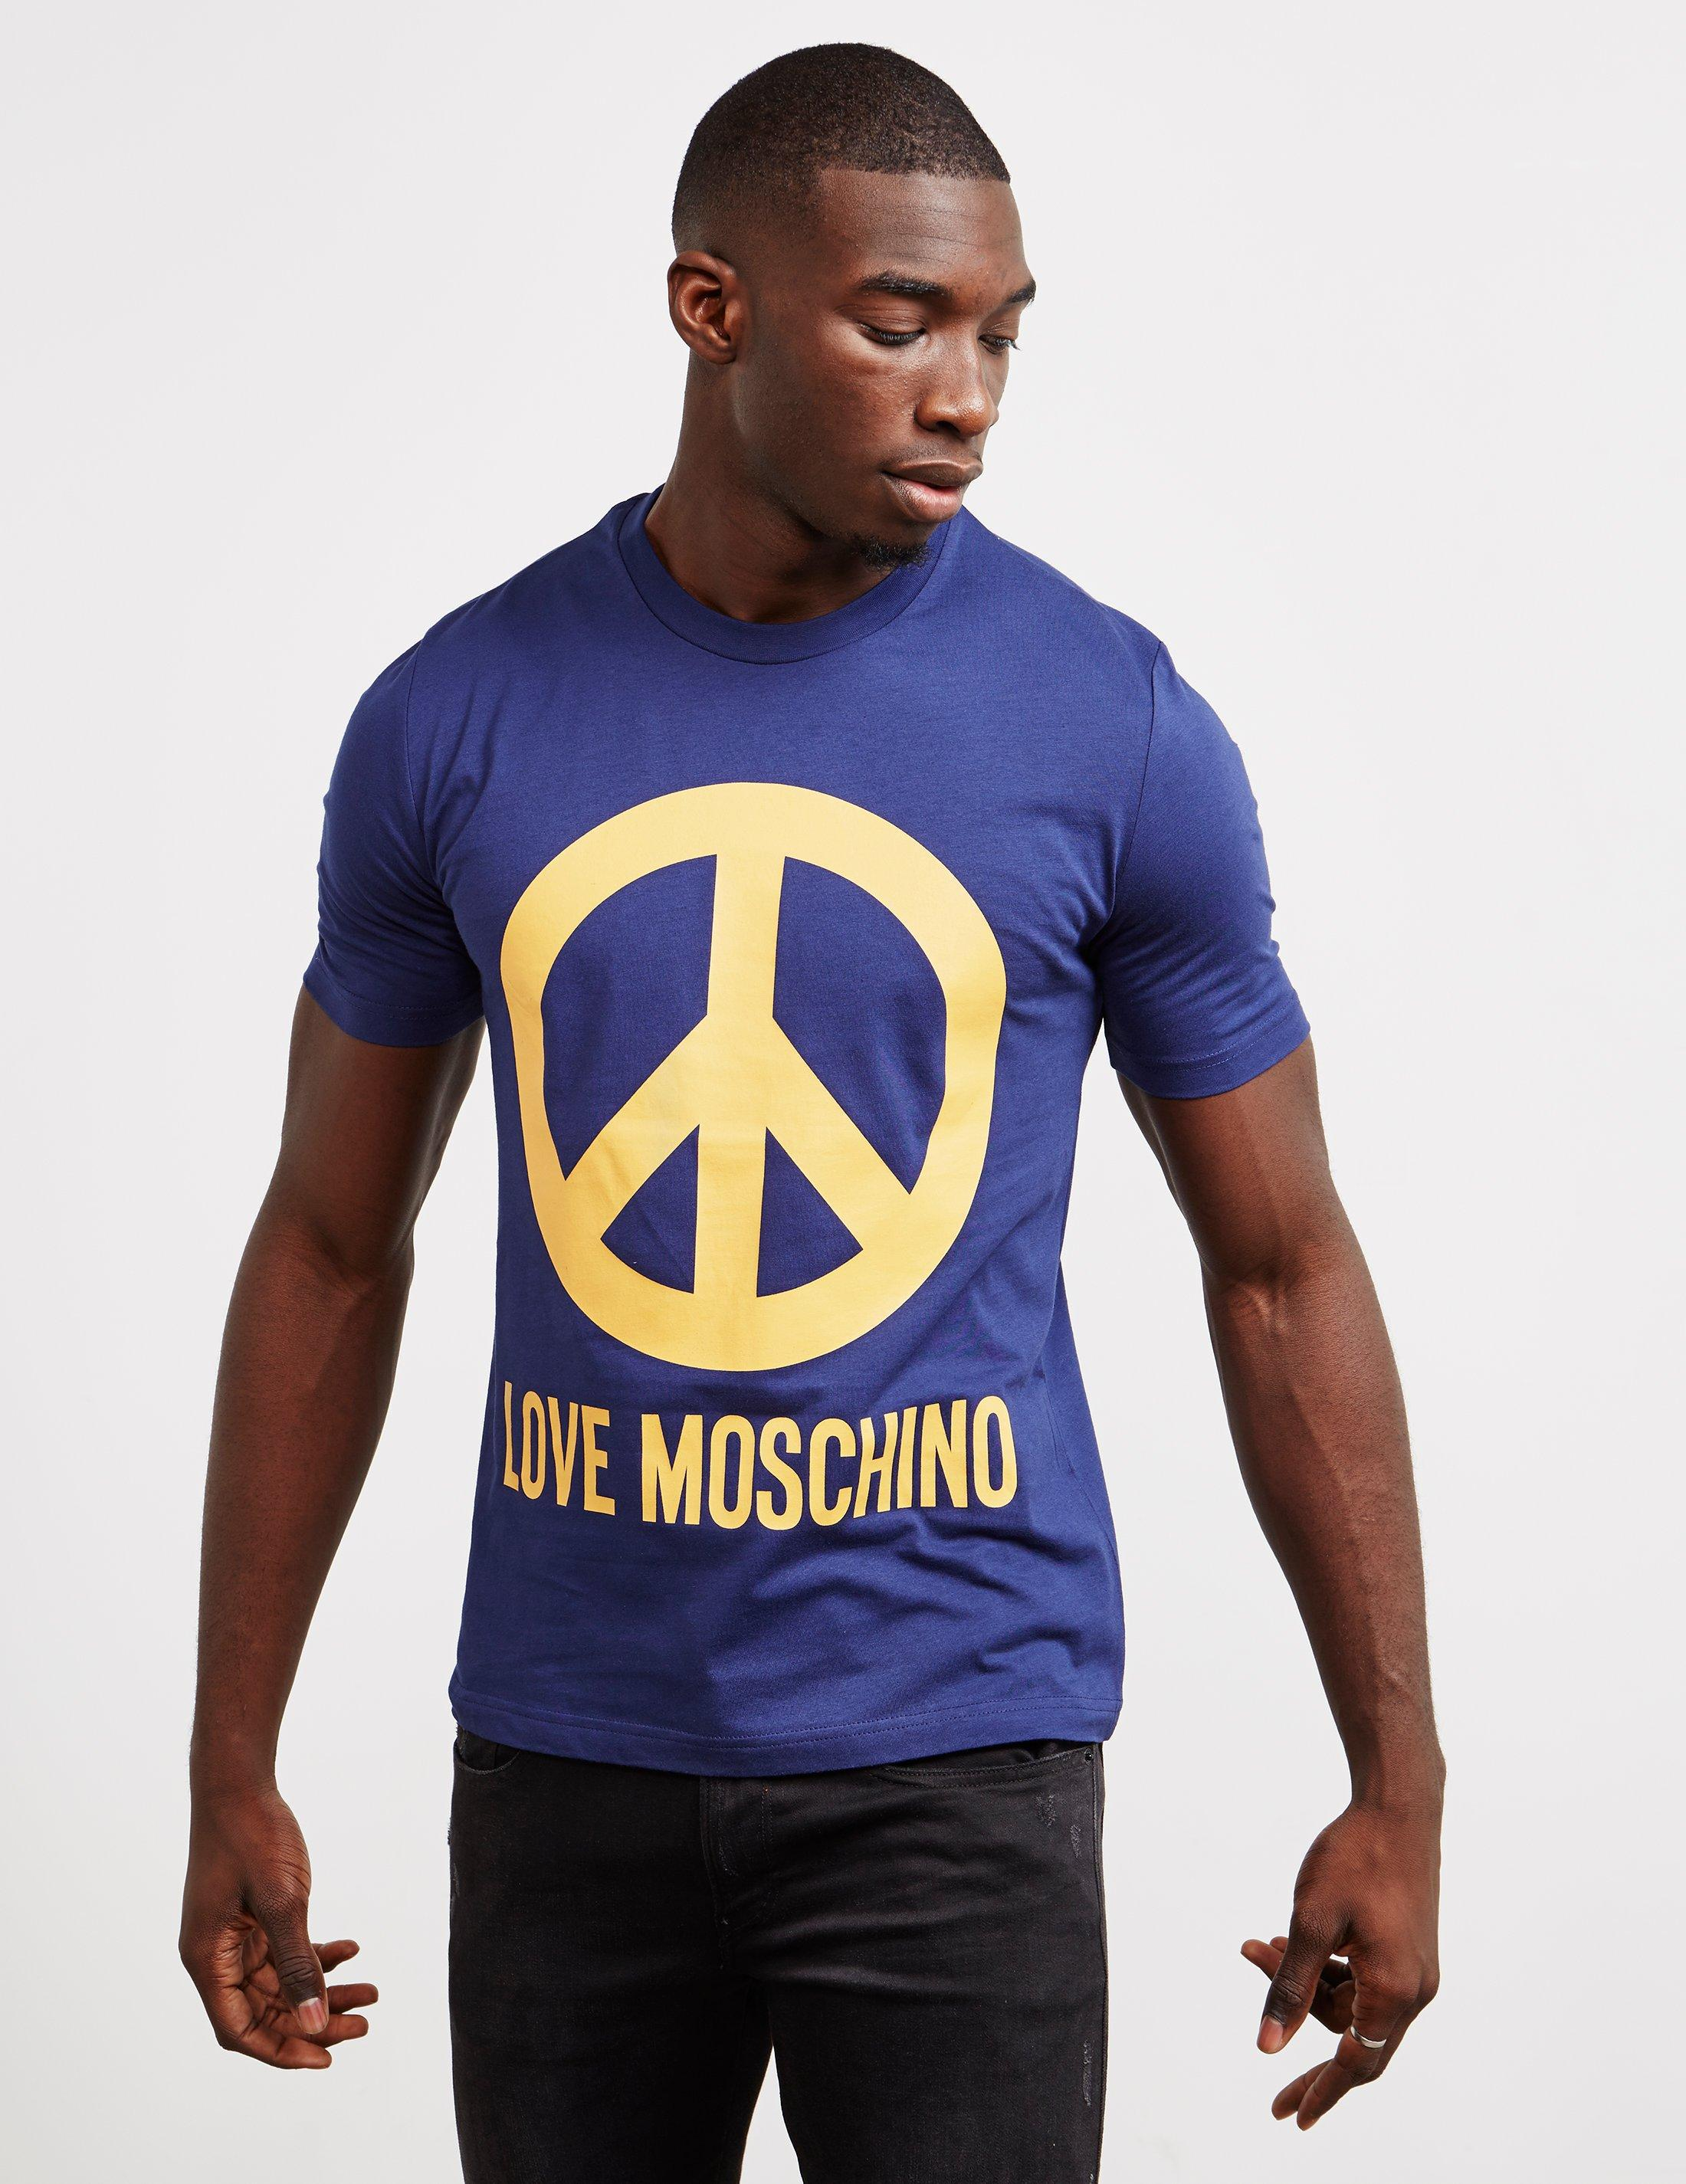 a6b0f688 Lyst - Love Moschino Mens Large Peace Short Sleeve T-shirt Navy Blue ...